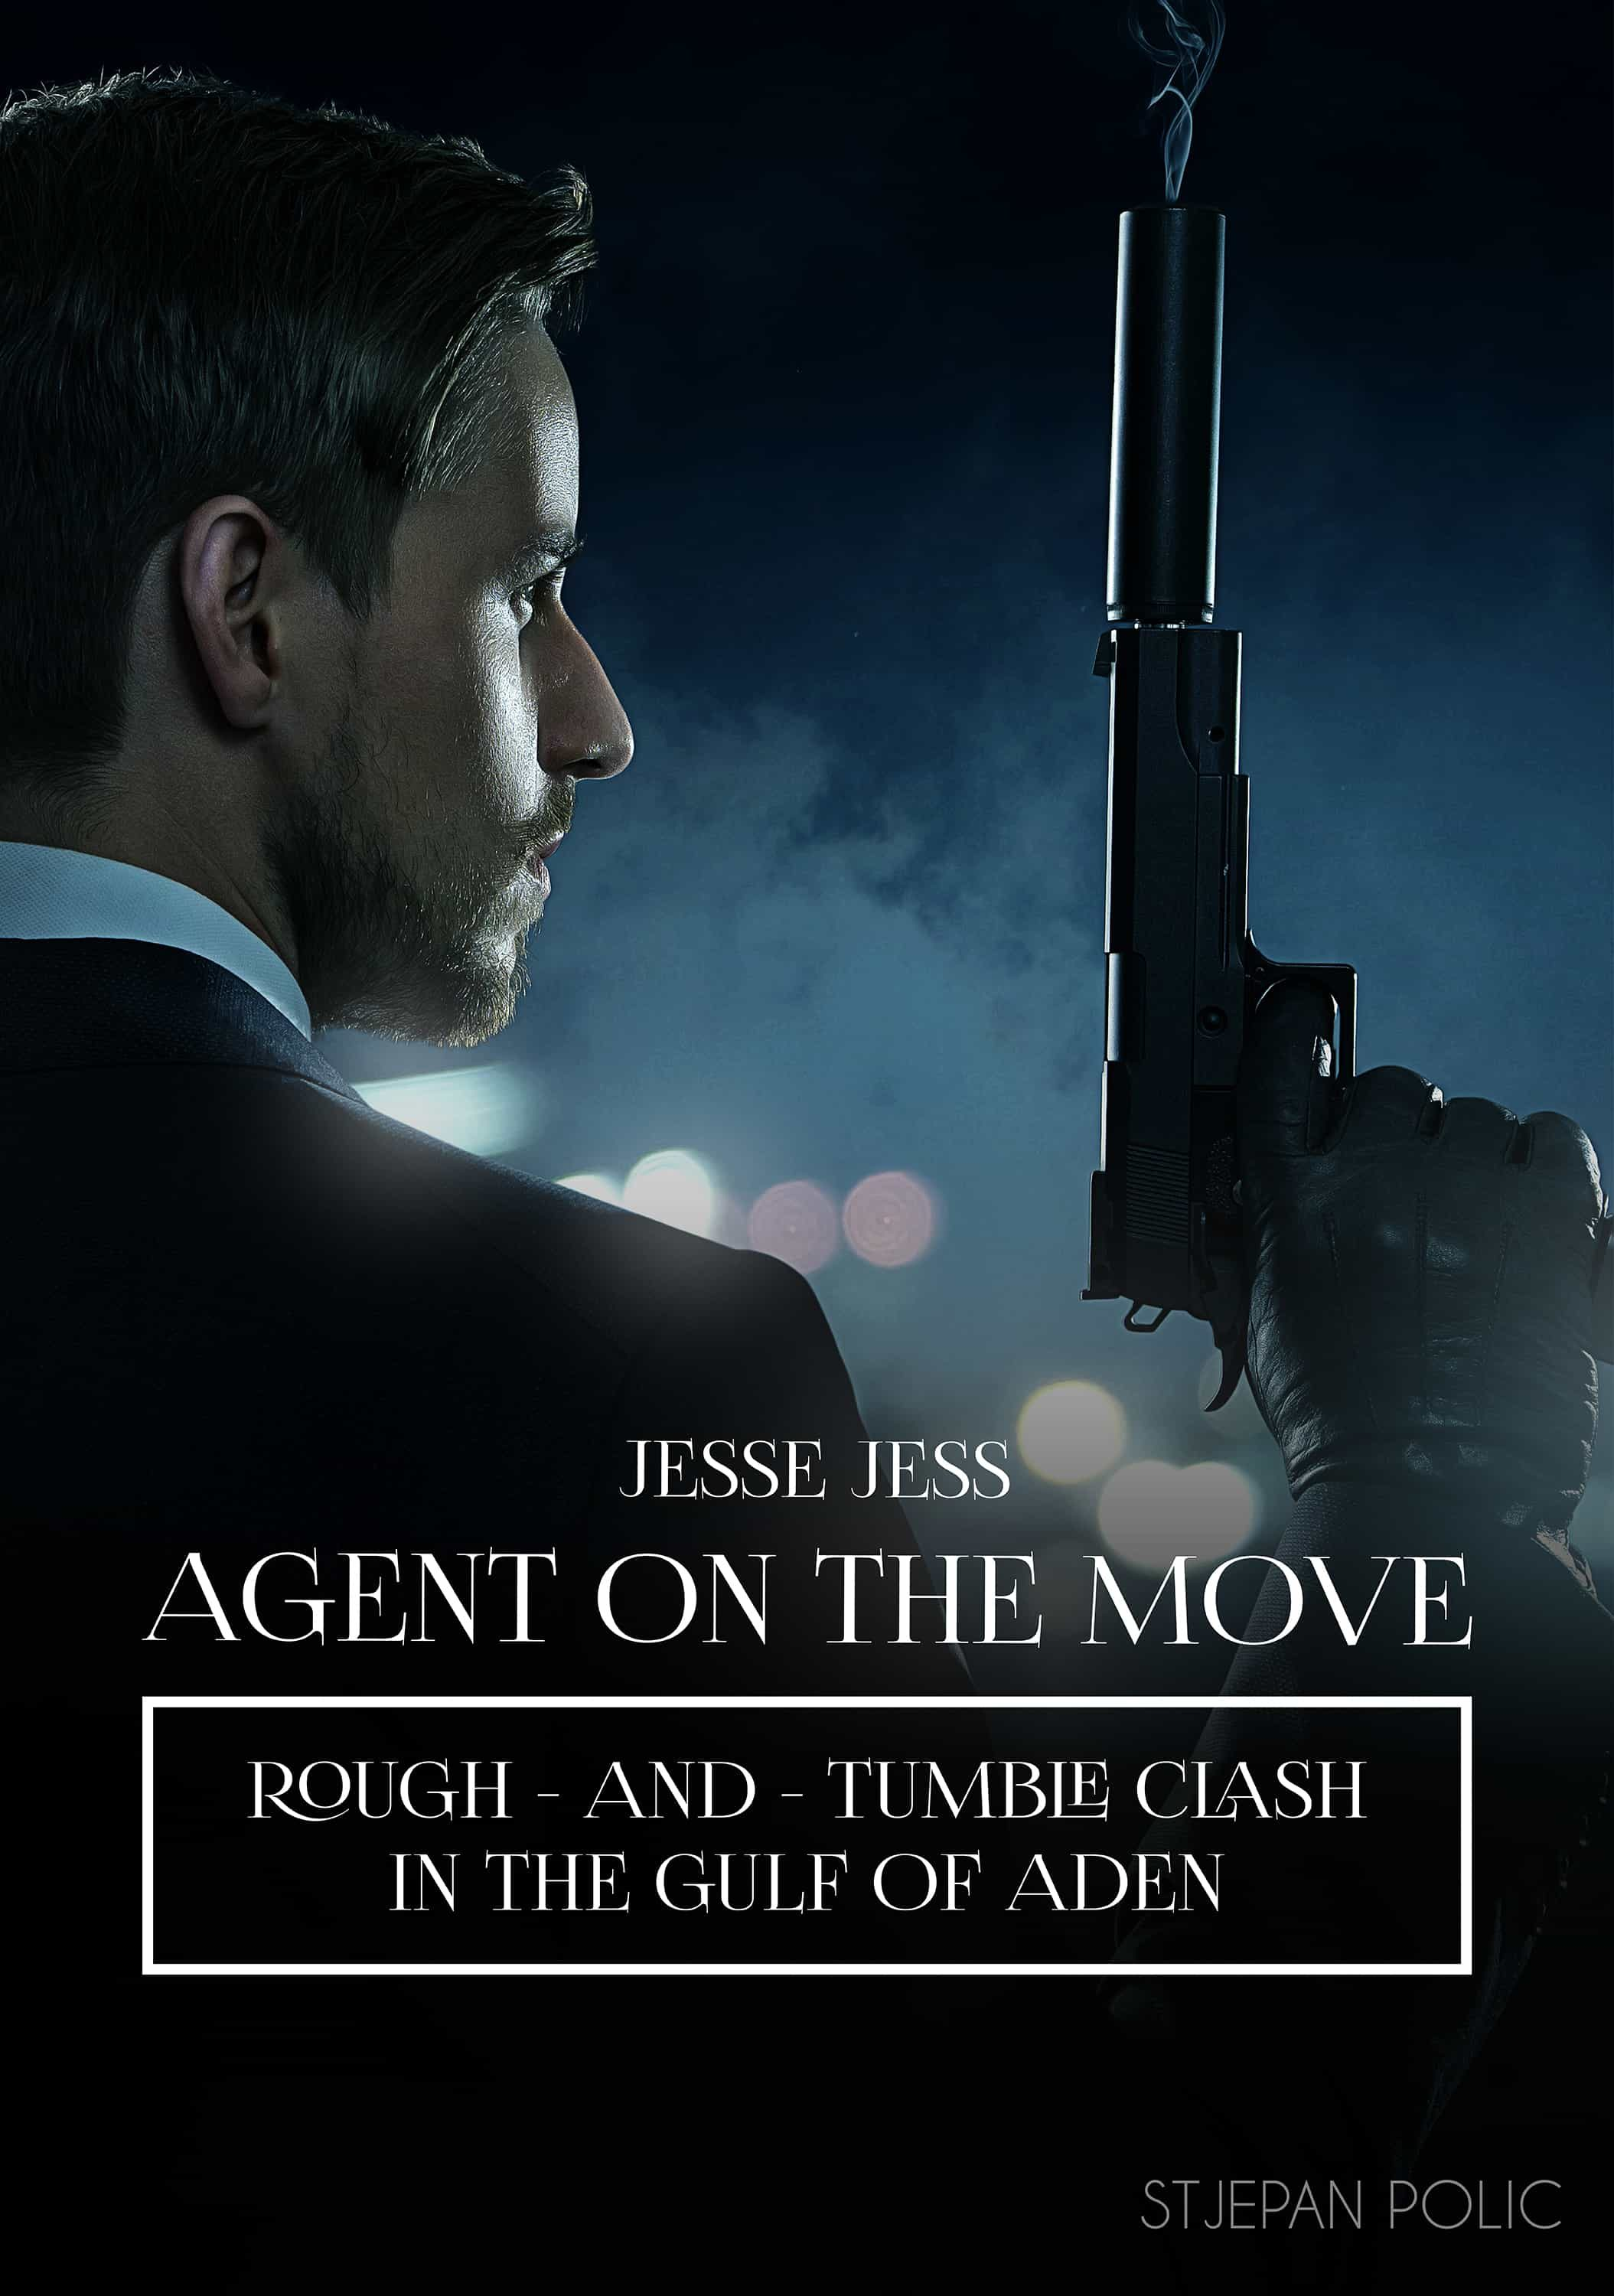 Jesse Jess - Agent On The Move - Rough And Tumble Clash   por Stjepan Polic epub